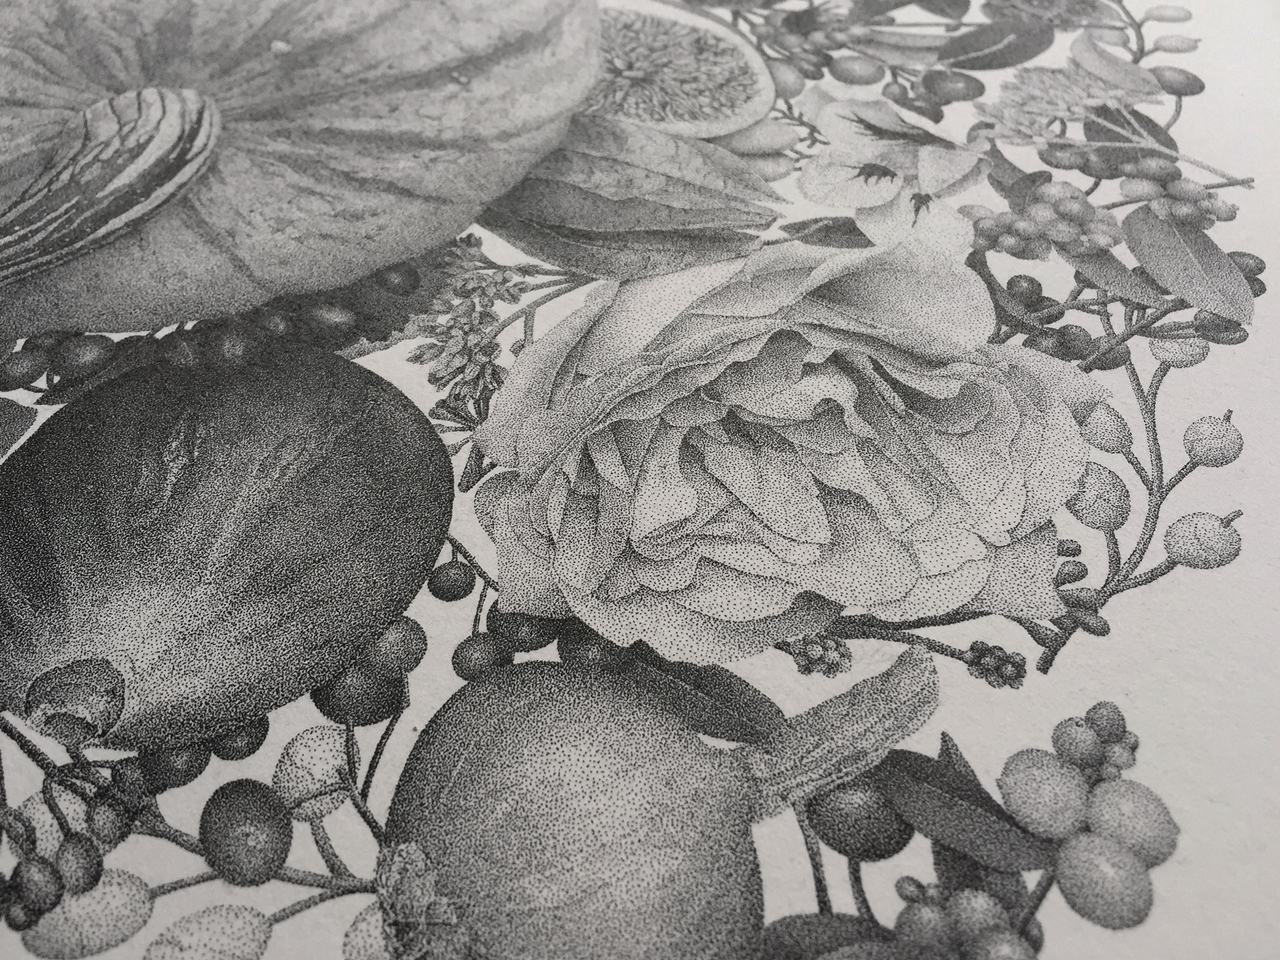 7-million-dots-and-370-hours-later-i-present-my-piece-called-autumn__06